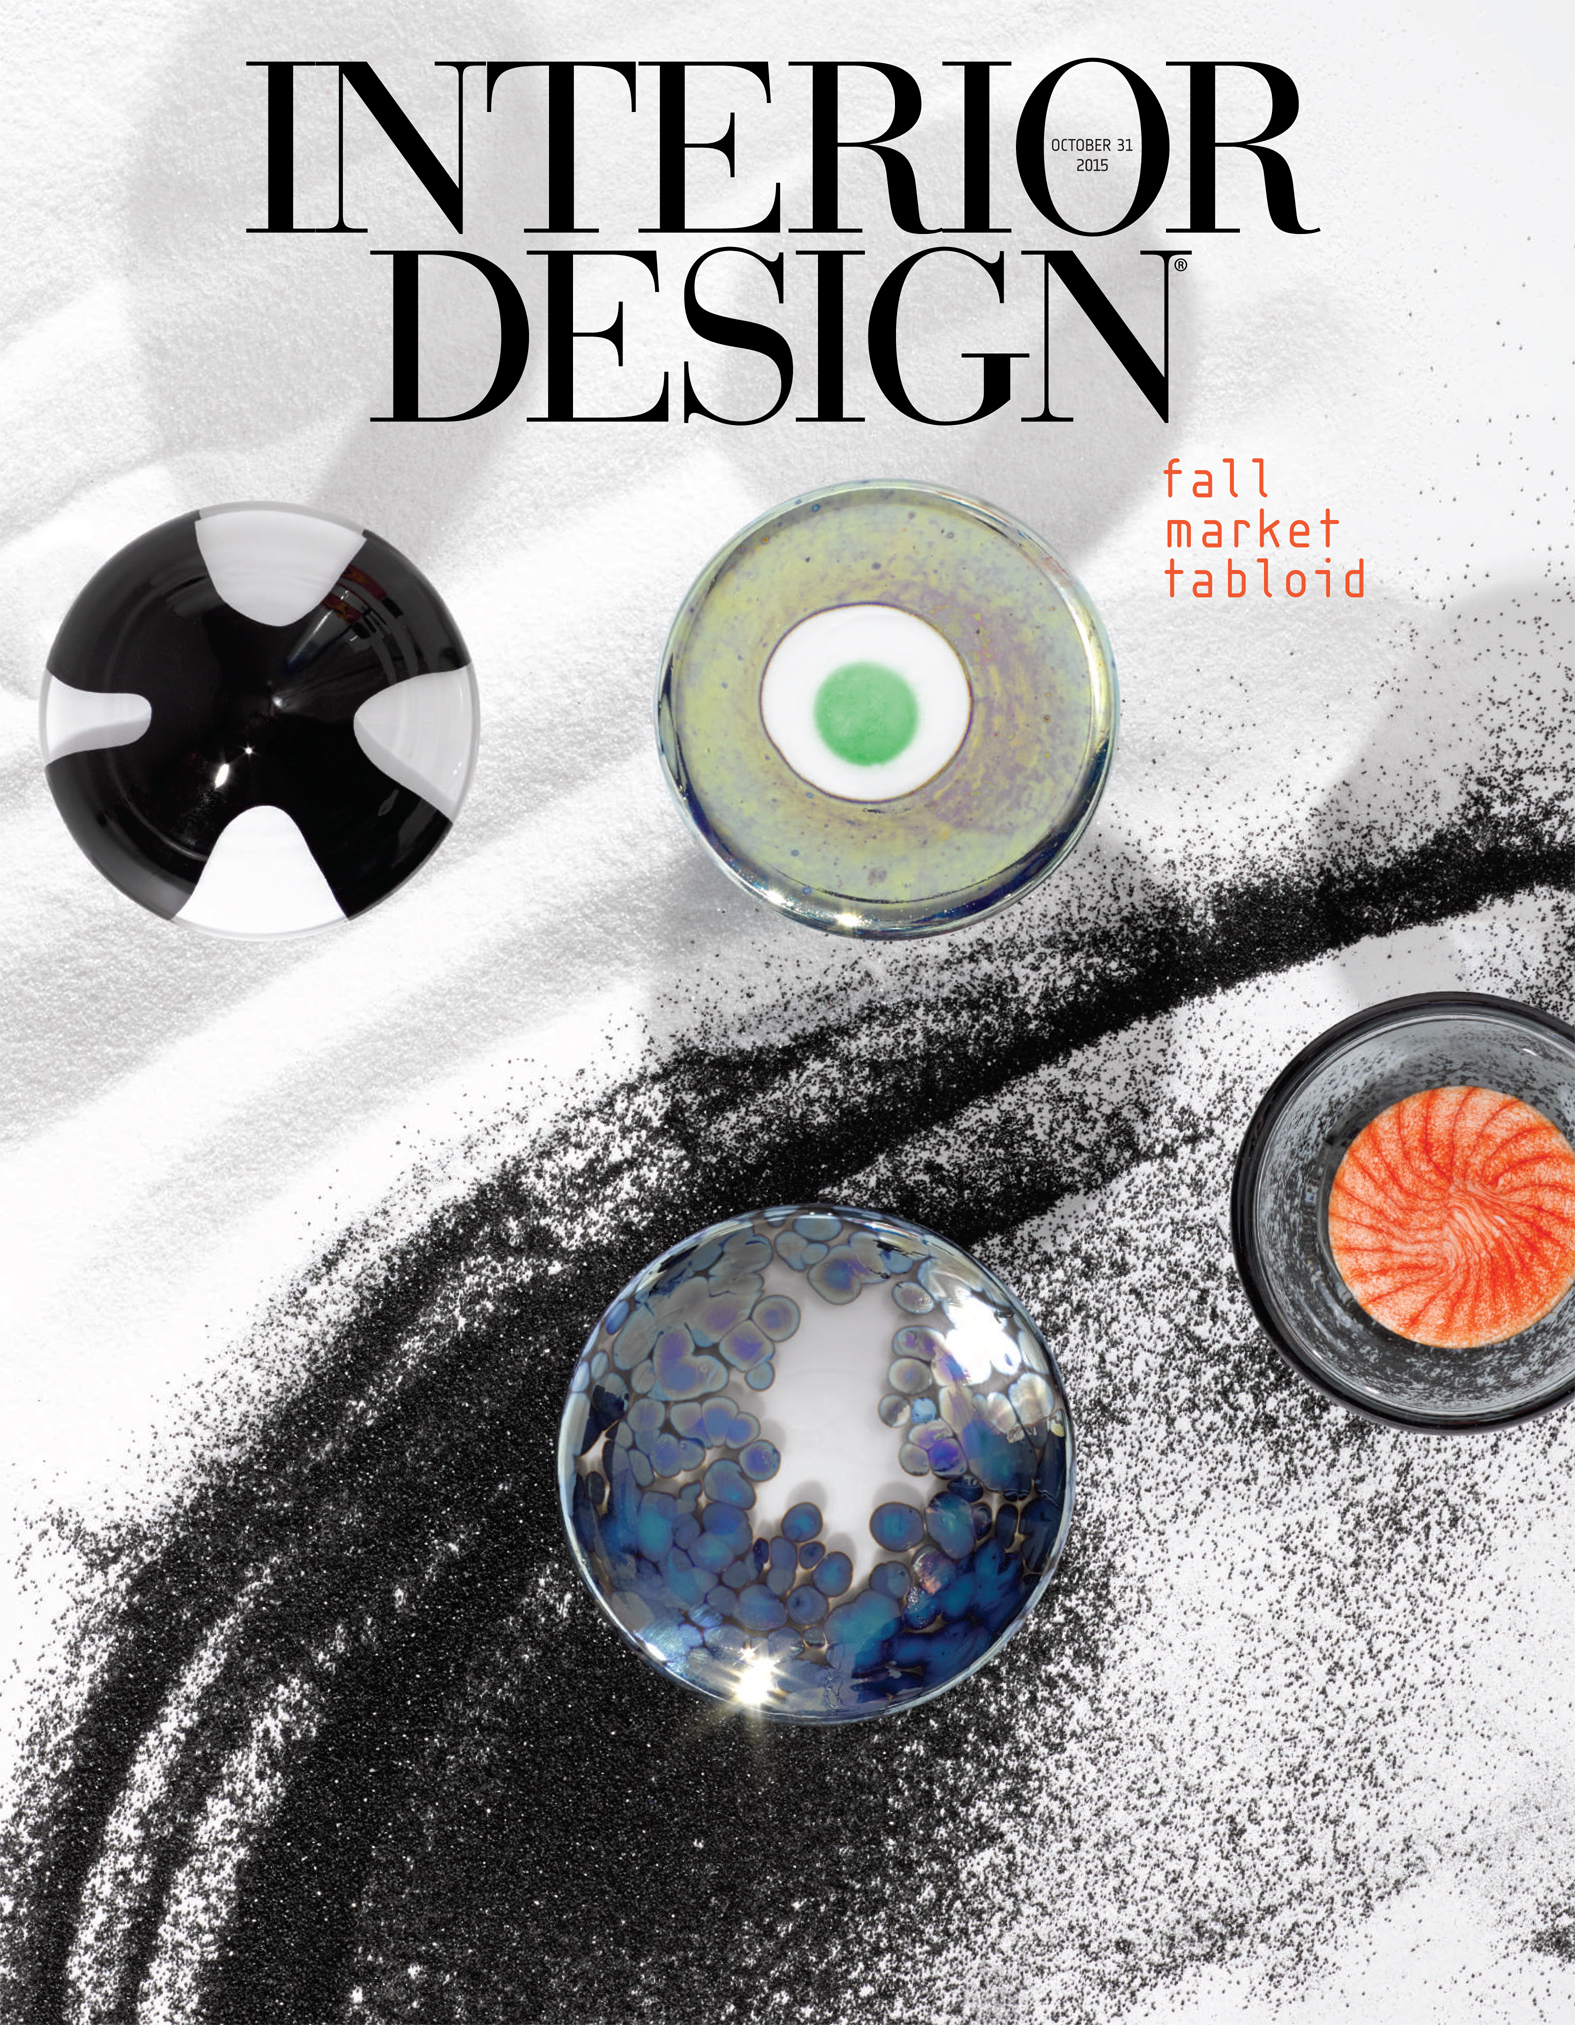 INTERIOR DESIGN MAGAZINE FEATURES USHER DAYBED